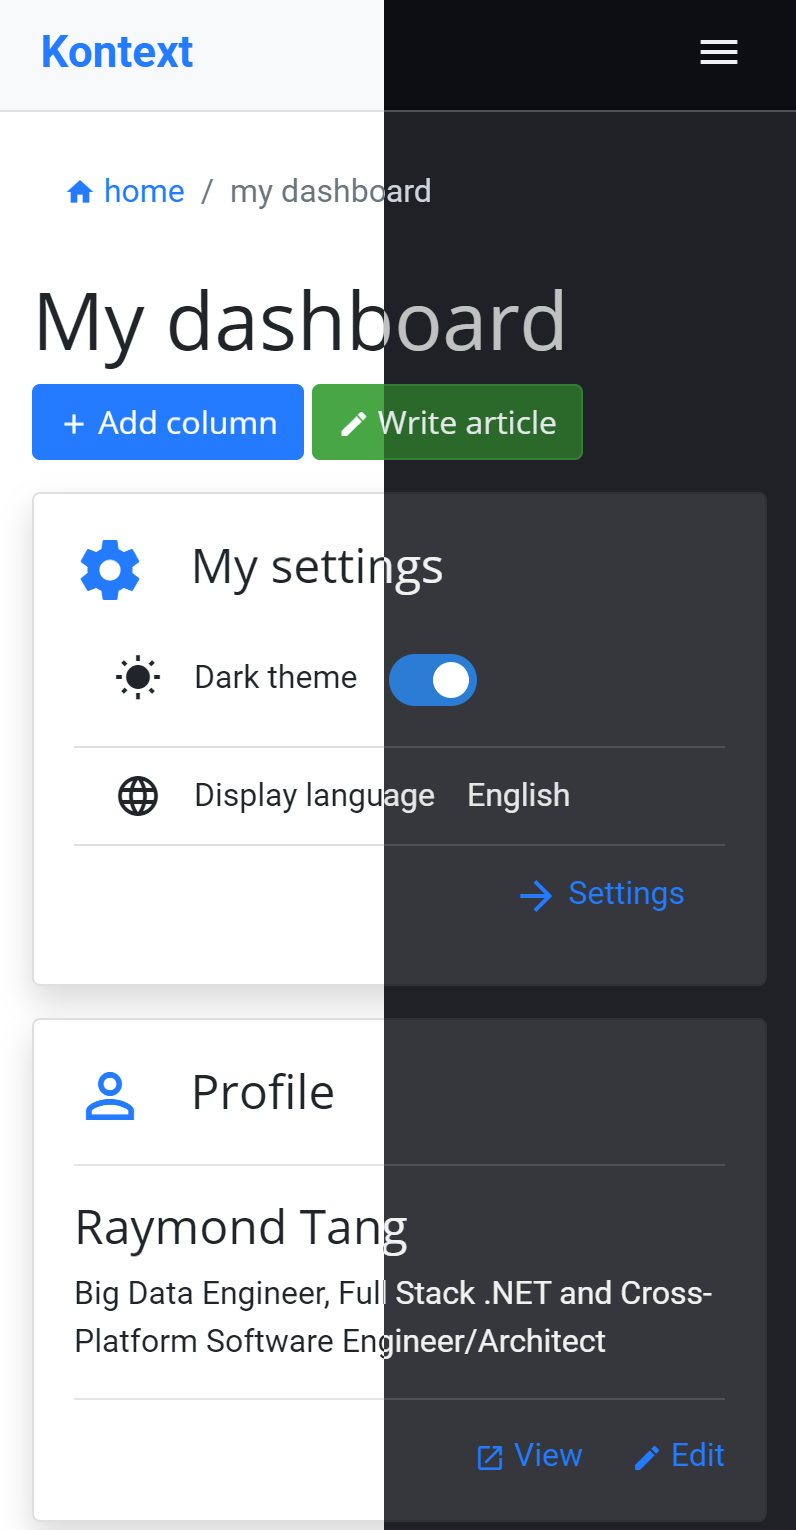 Kontext Dark Theme Mode is Available